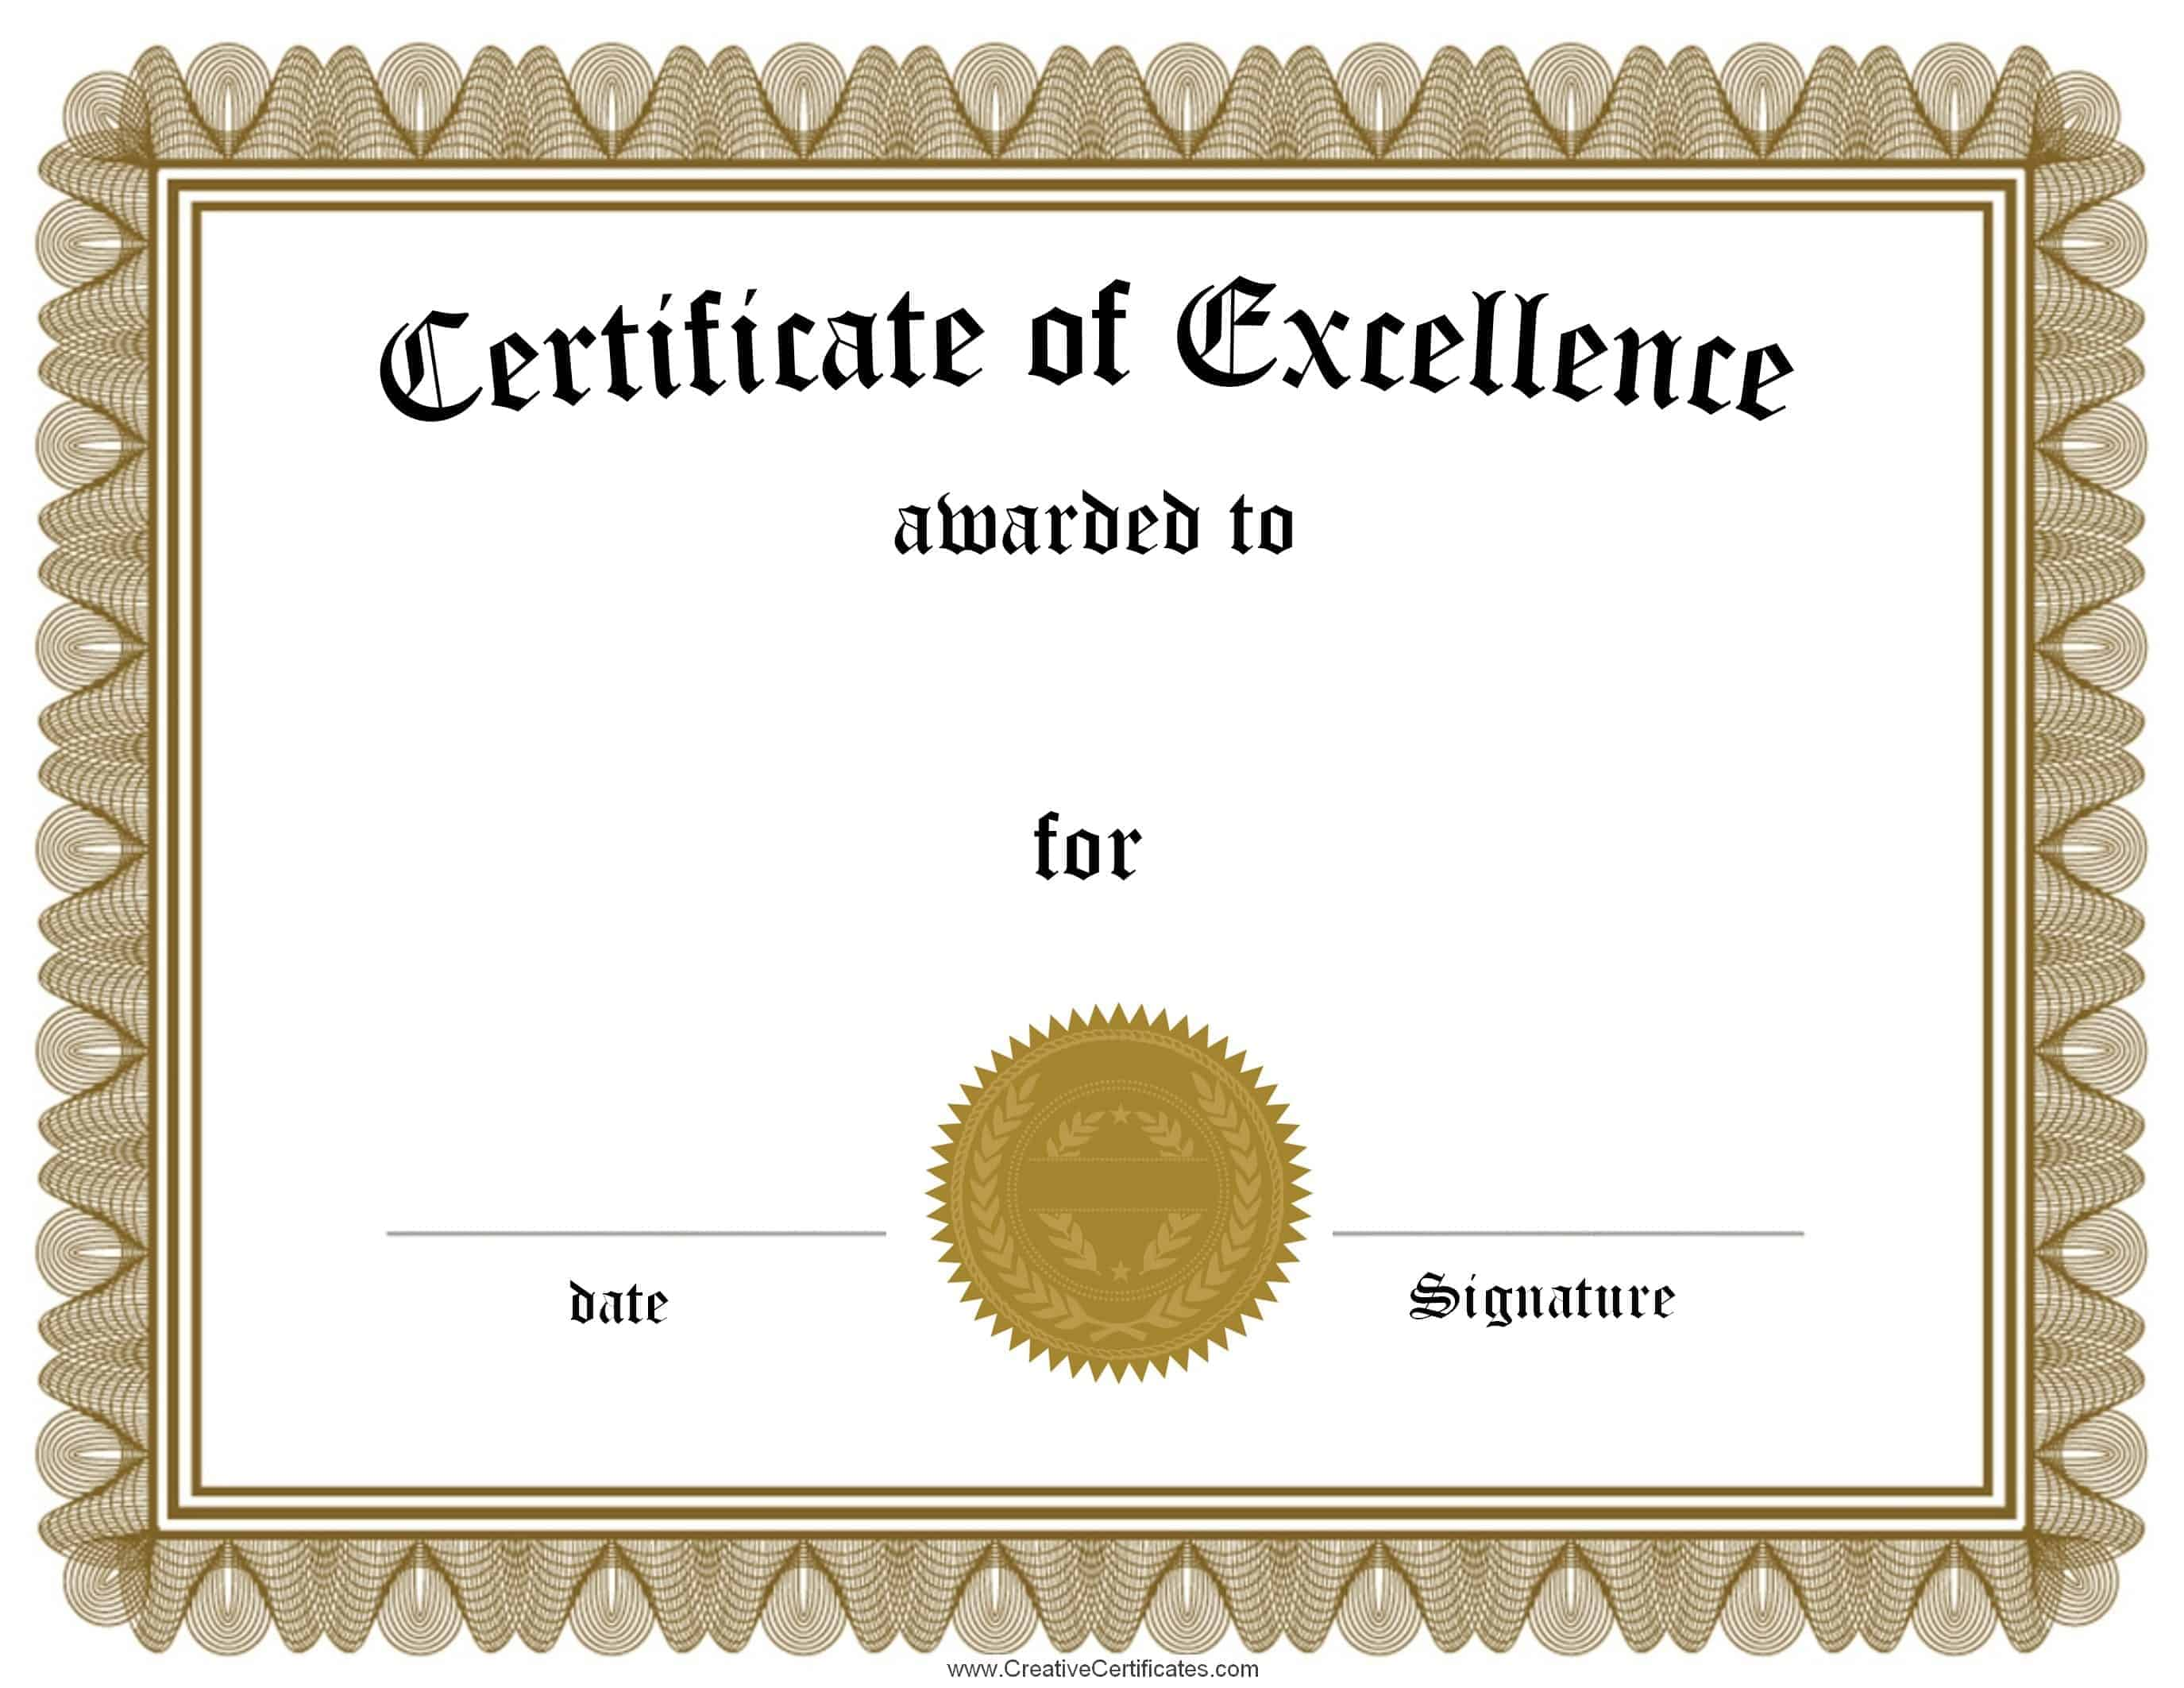 Free customizable certificate of achievement certificate of excellence xflitez Choice Image